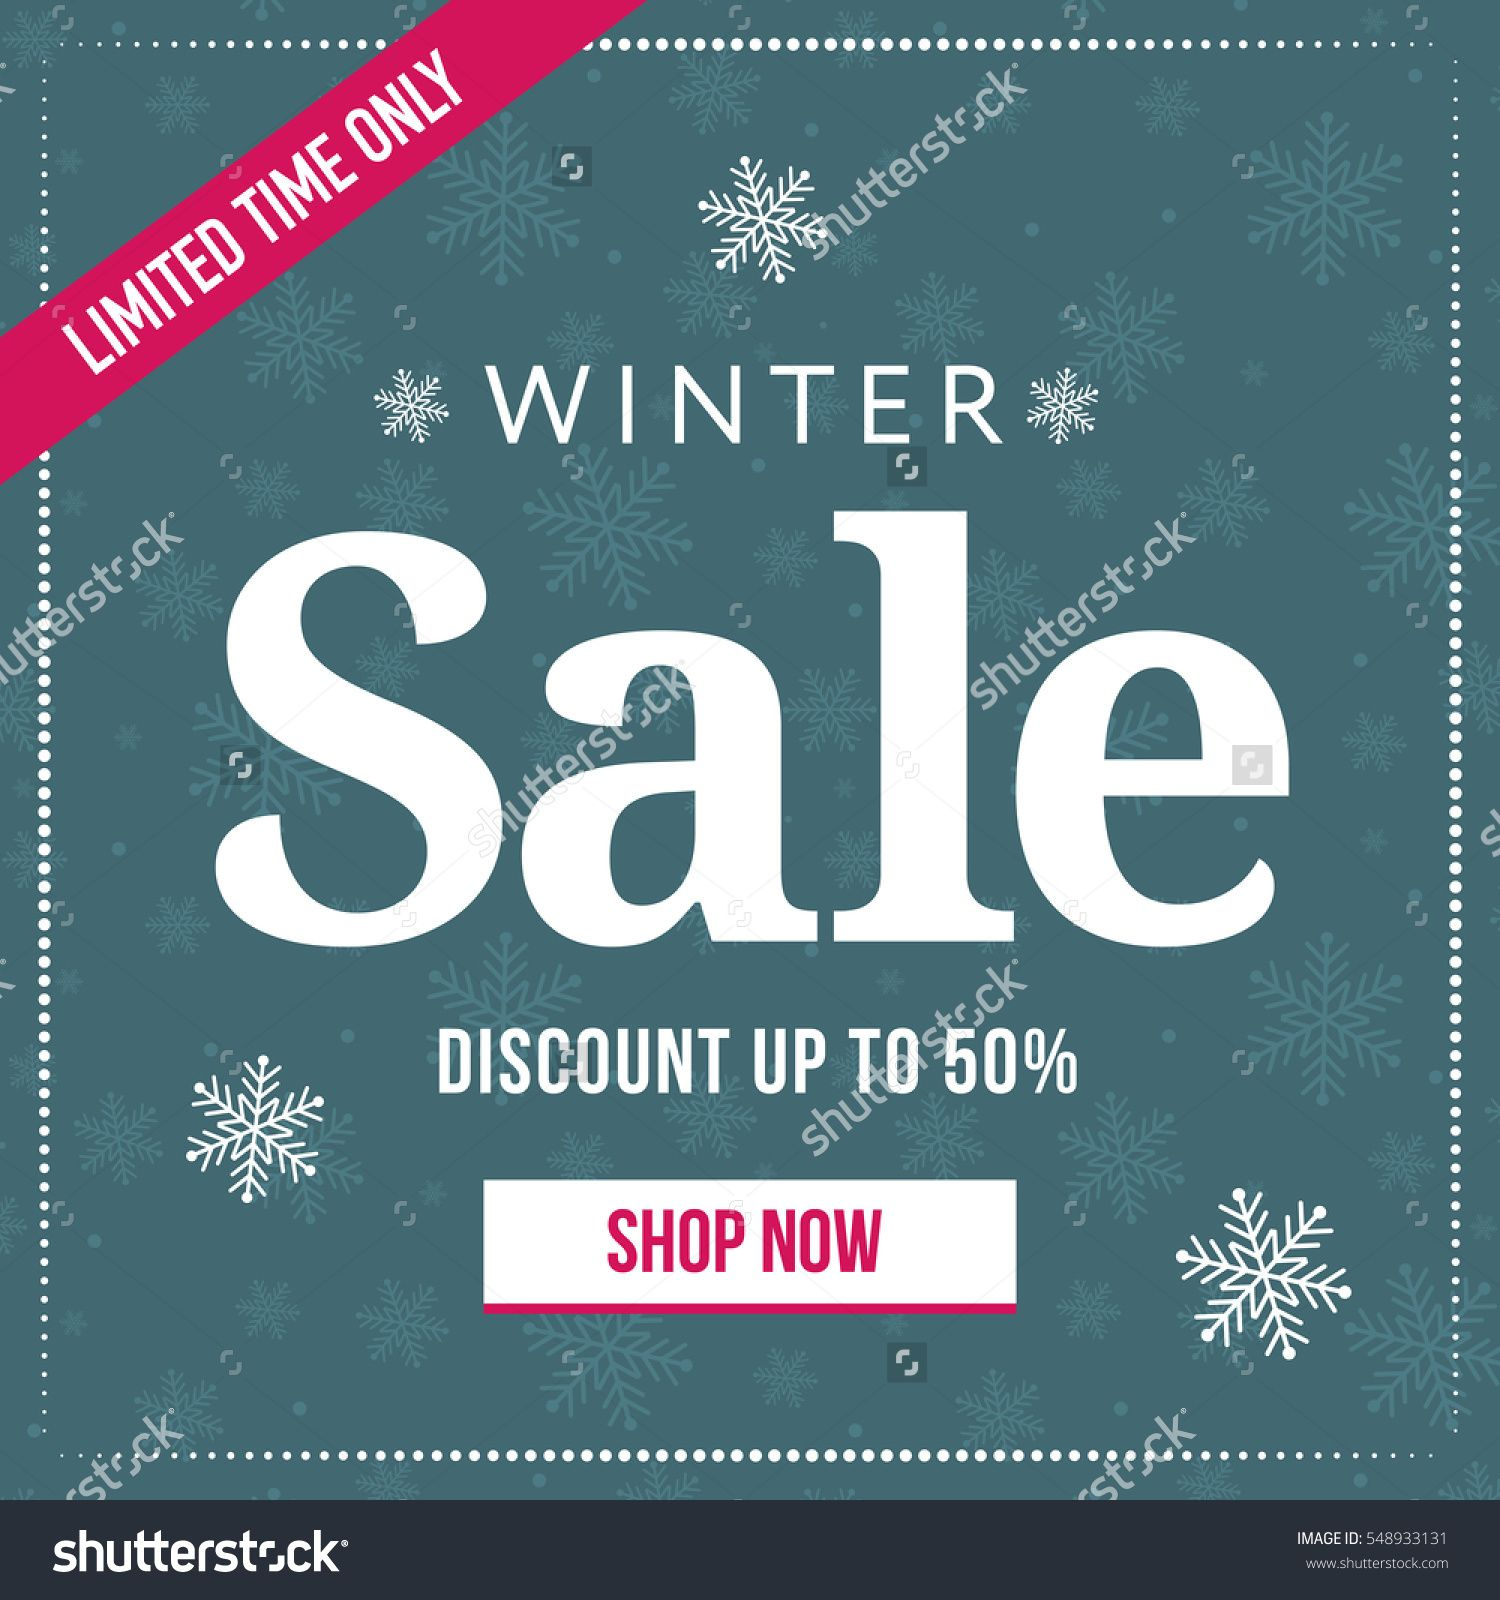 Winter Sale Banners Spring Season Banners